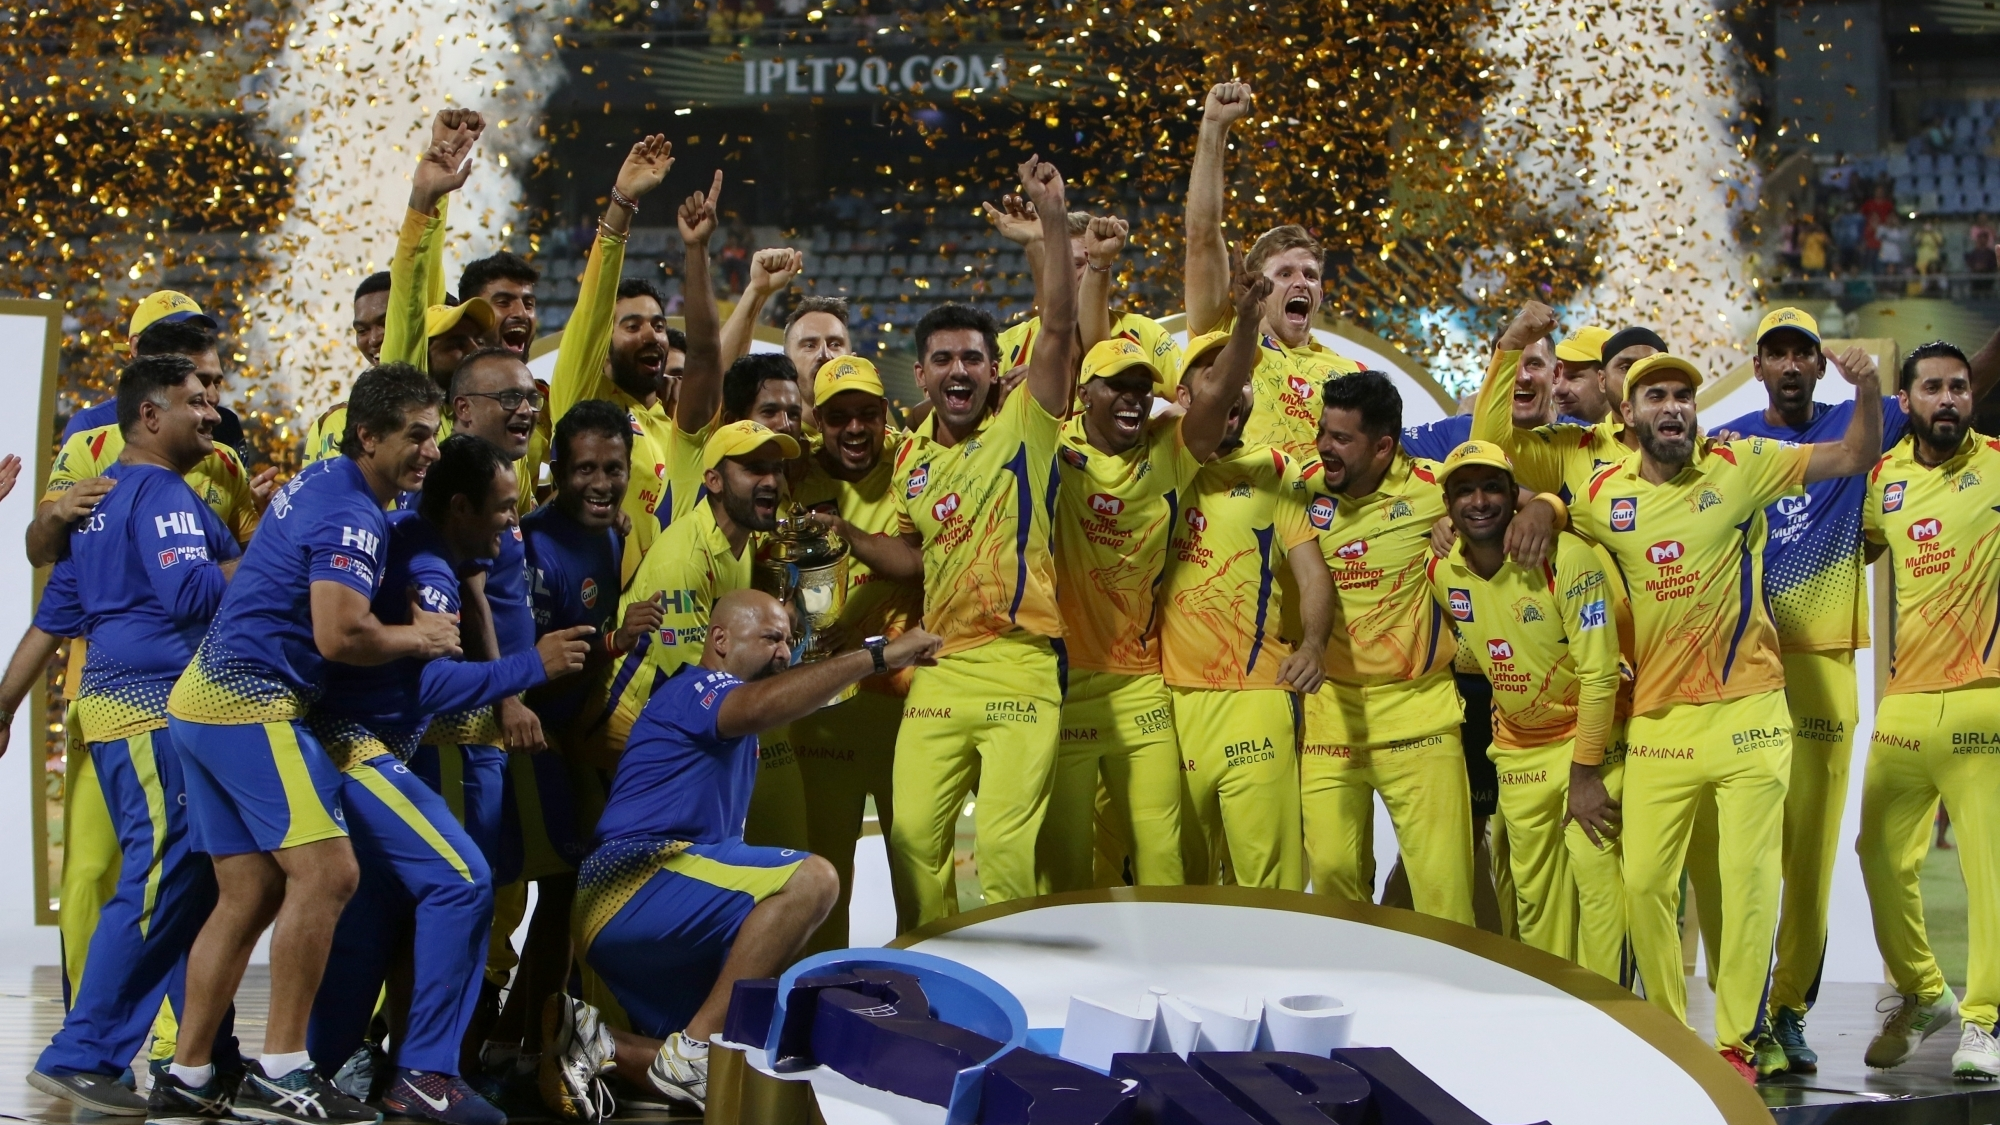 IPL 2018: Watch – MS Dhoni and his troops lifting the 'IPL 2018 trophy'